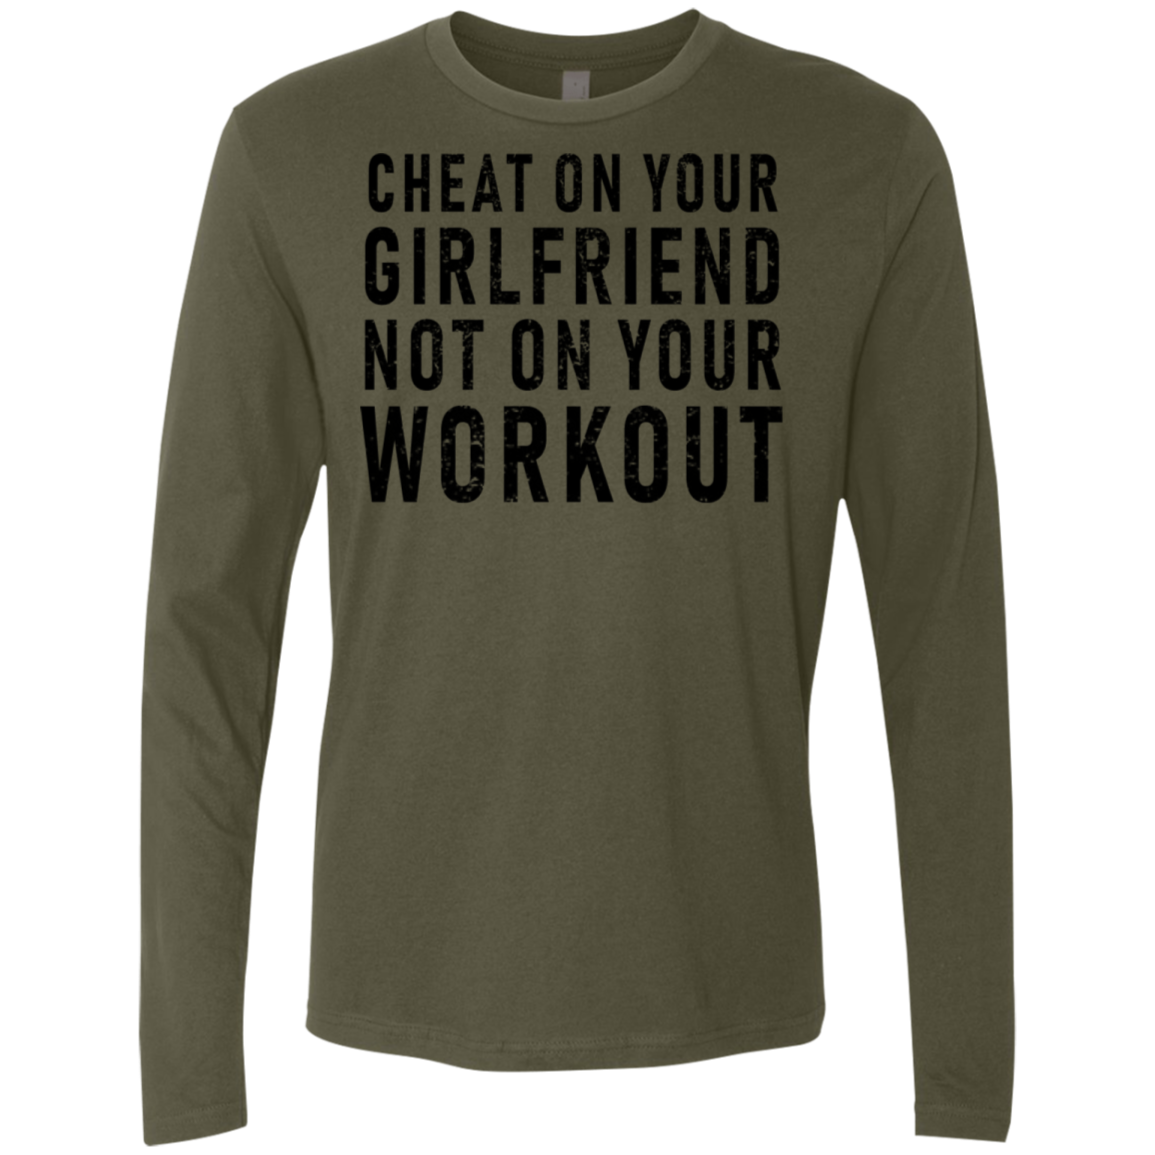 Cheat On Your Cirlfriend Not On Your Workout Men's Long Sleeve Tee